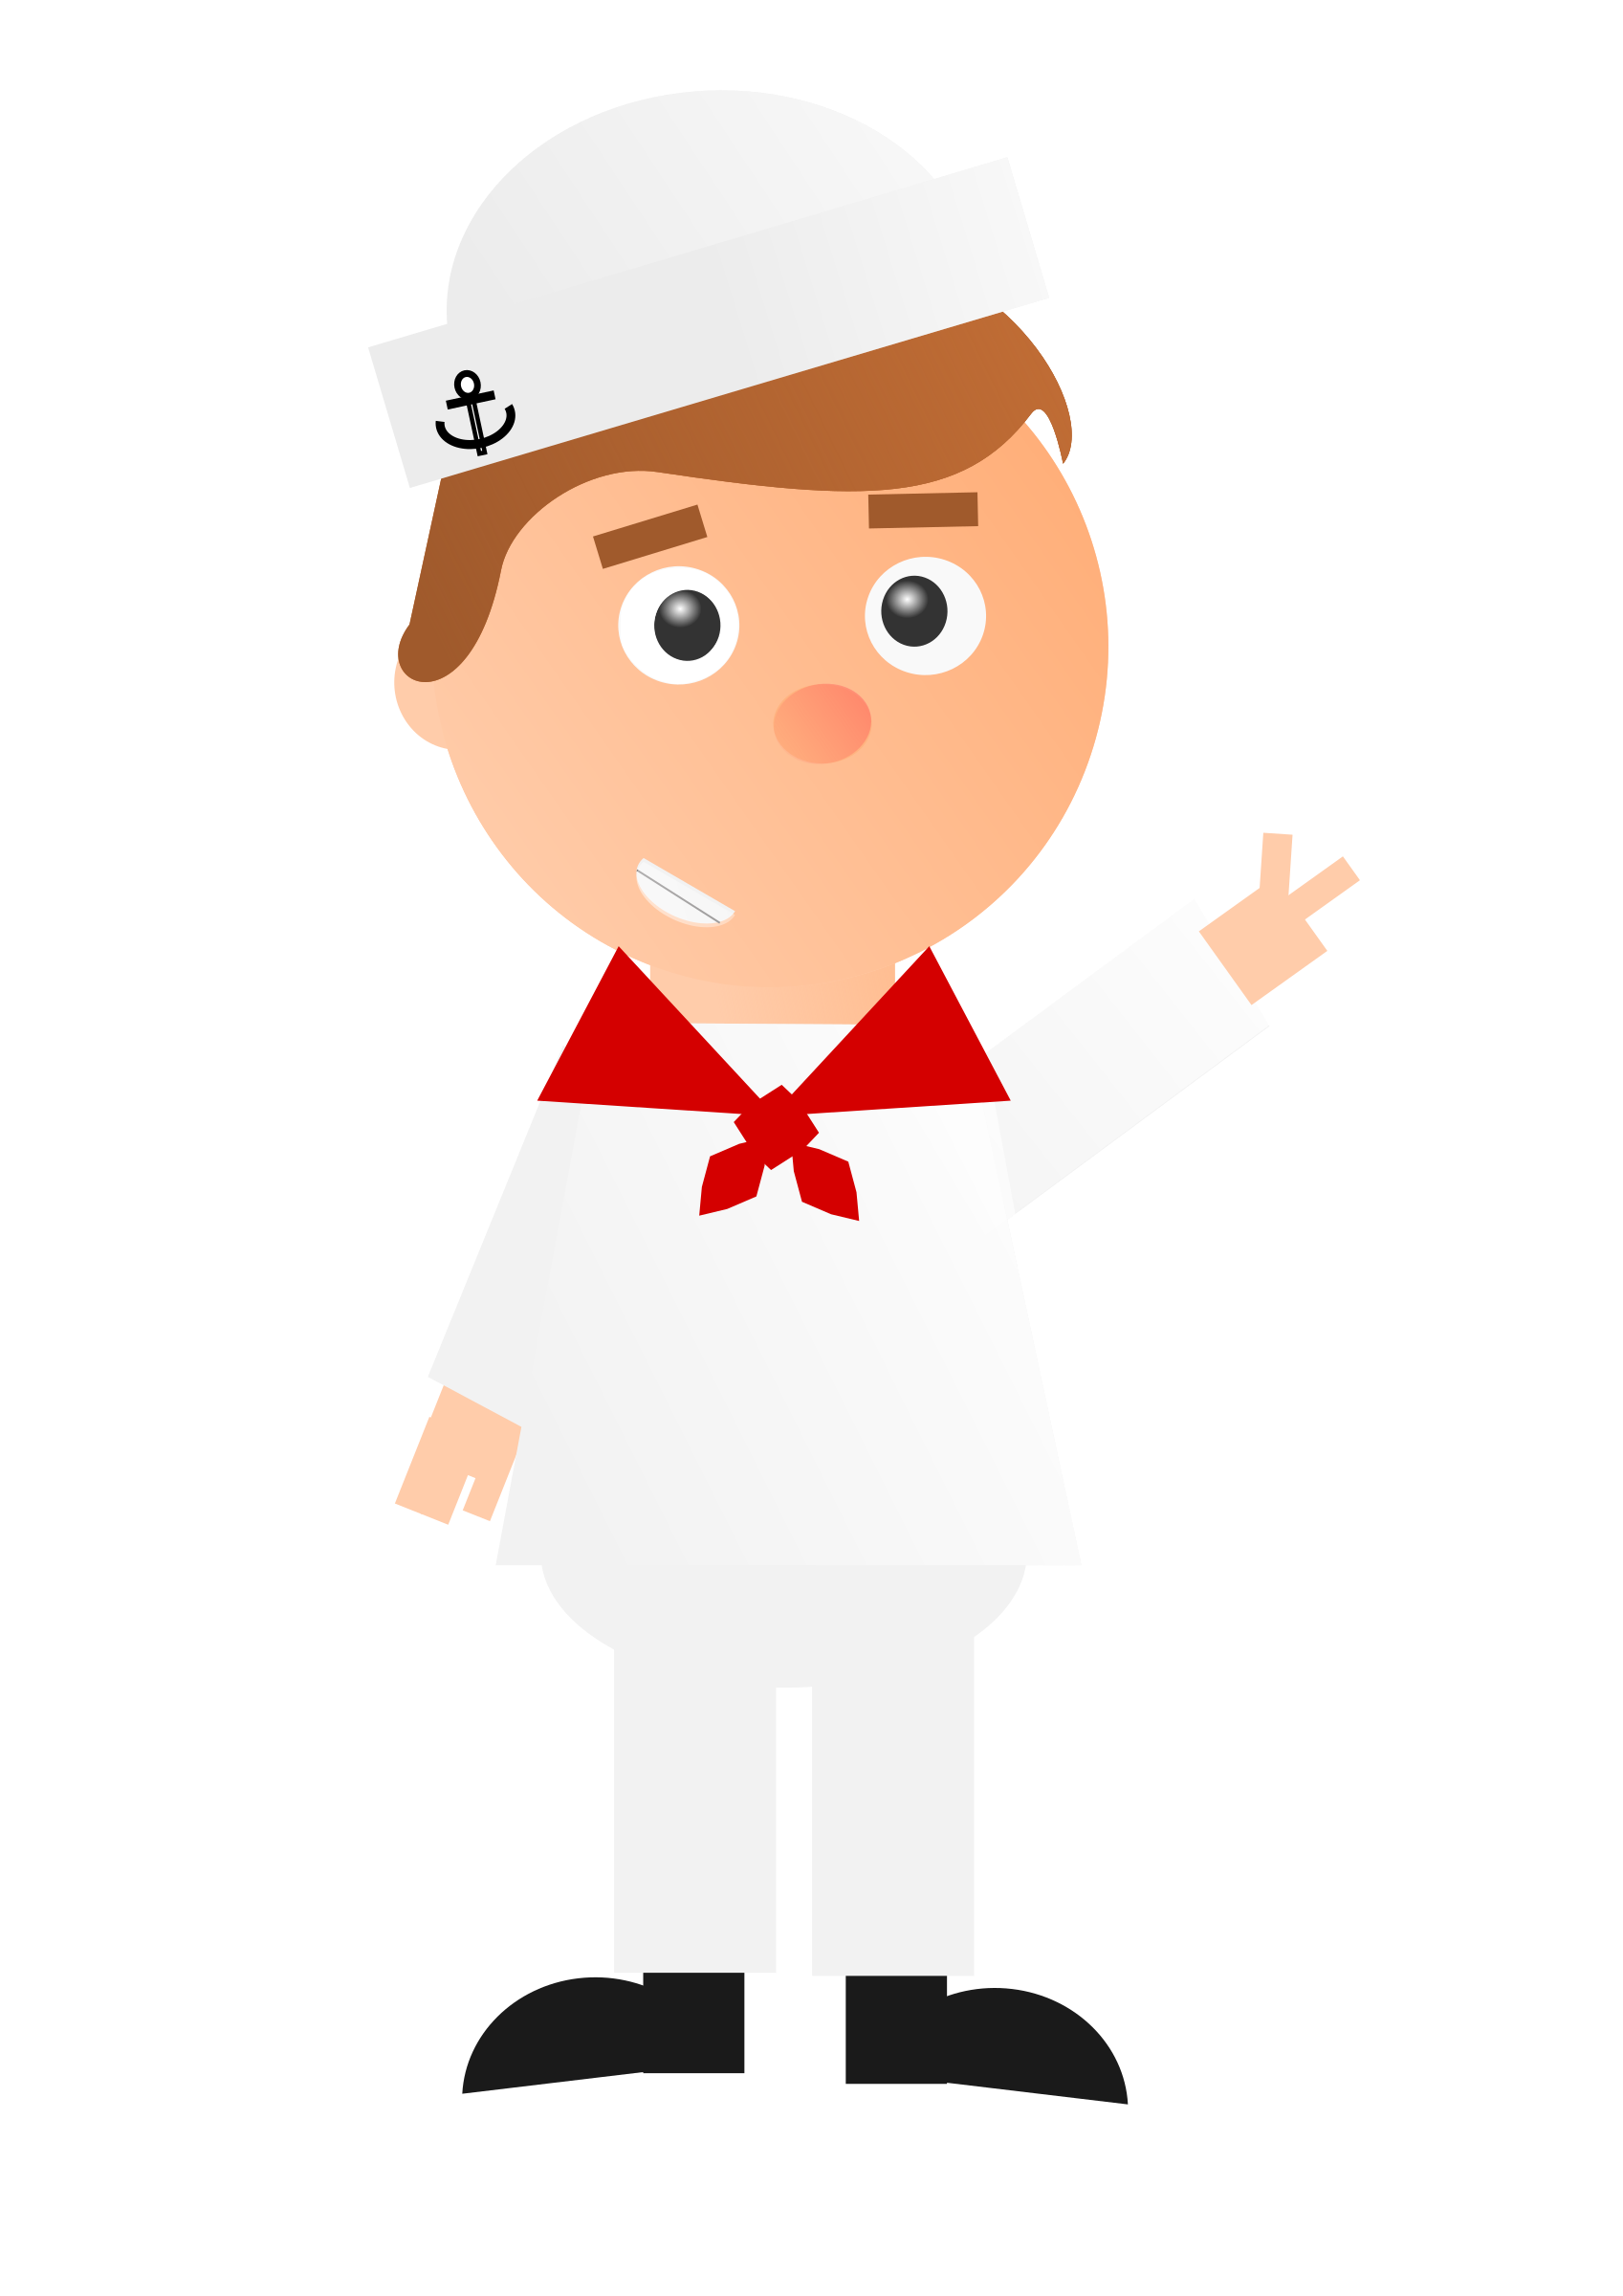 svg royalty free Animated free on dumielauxepices. Sailor clipart.